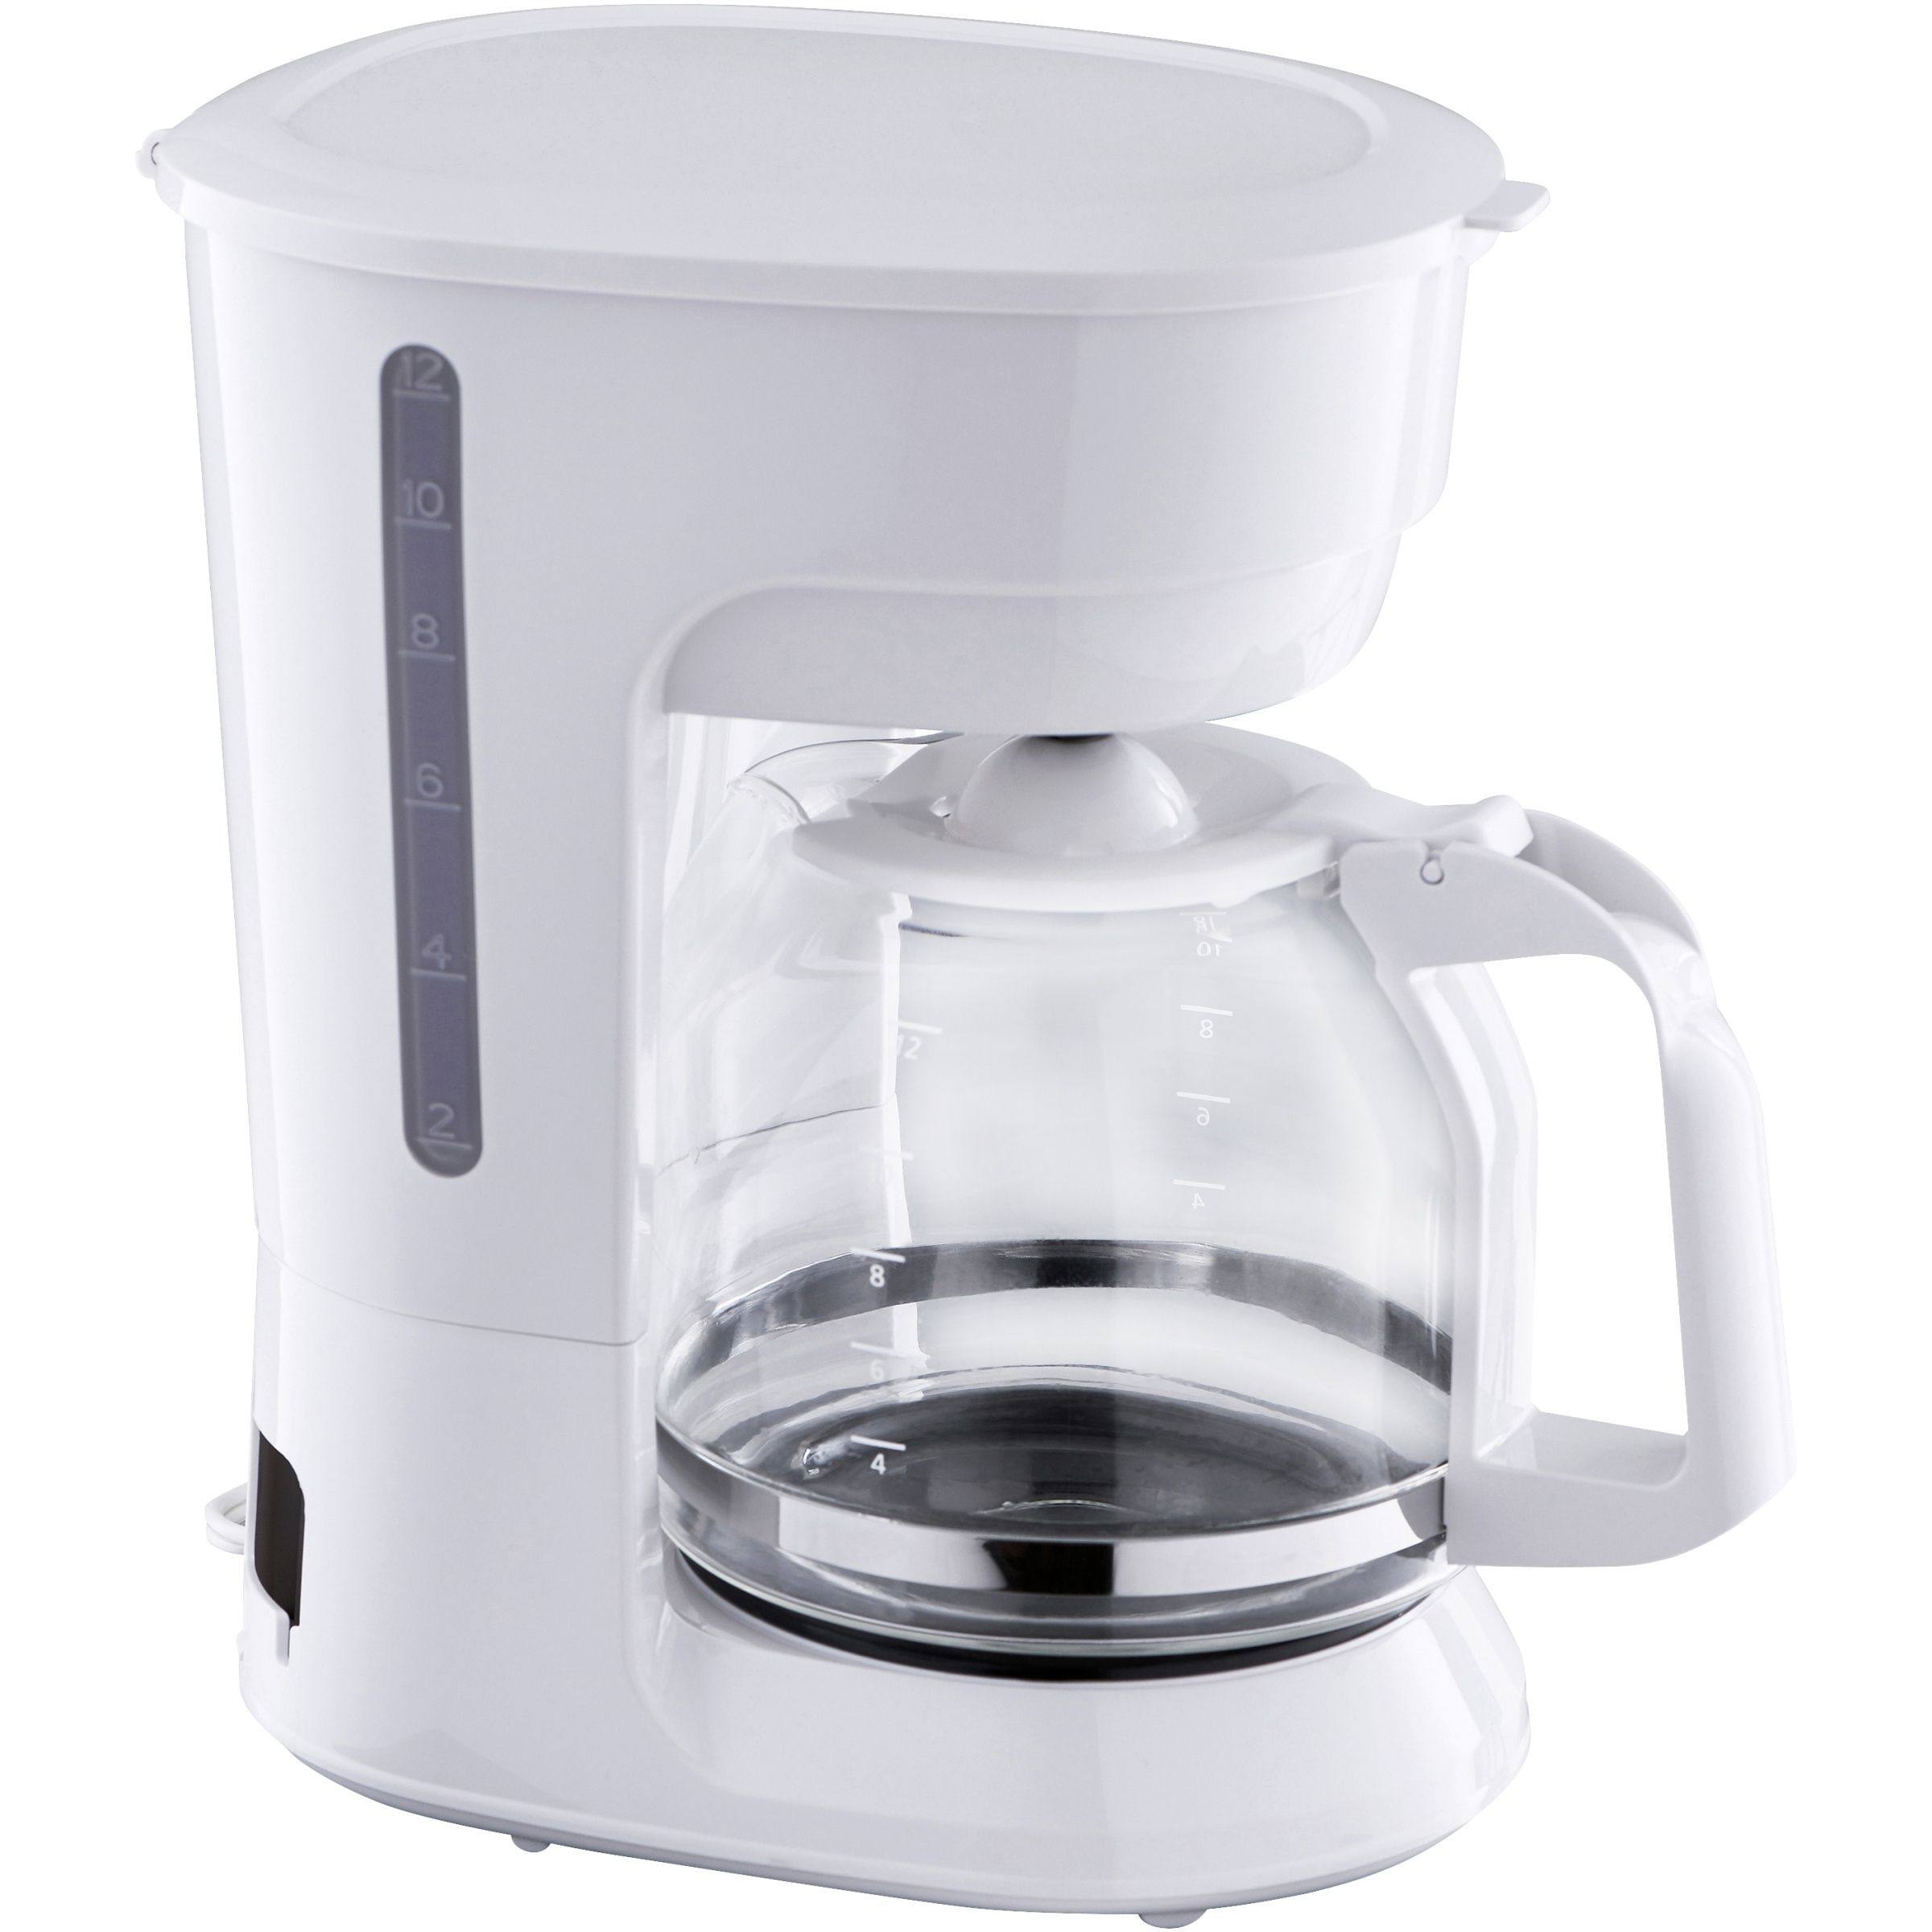 Mainstays 12 Cup White Coffee Maker with Removable Filter